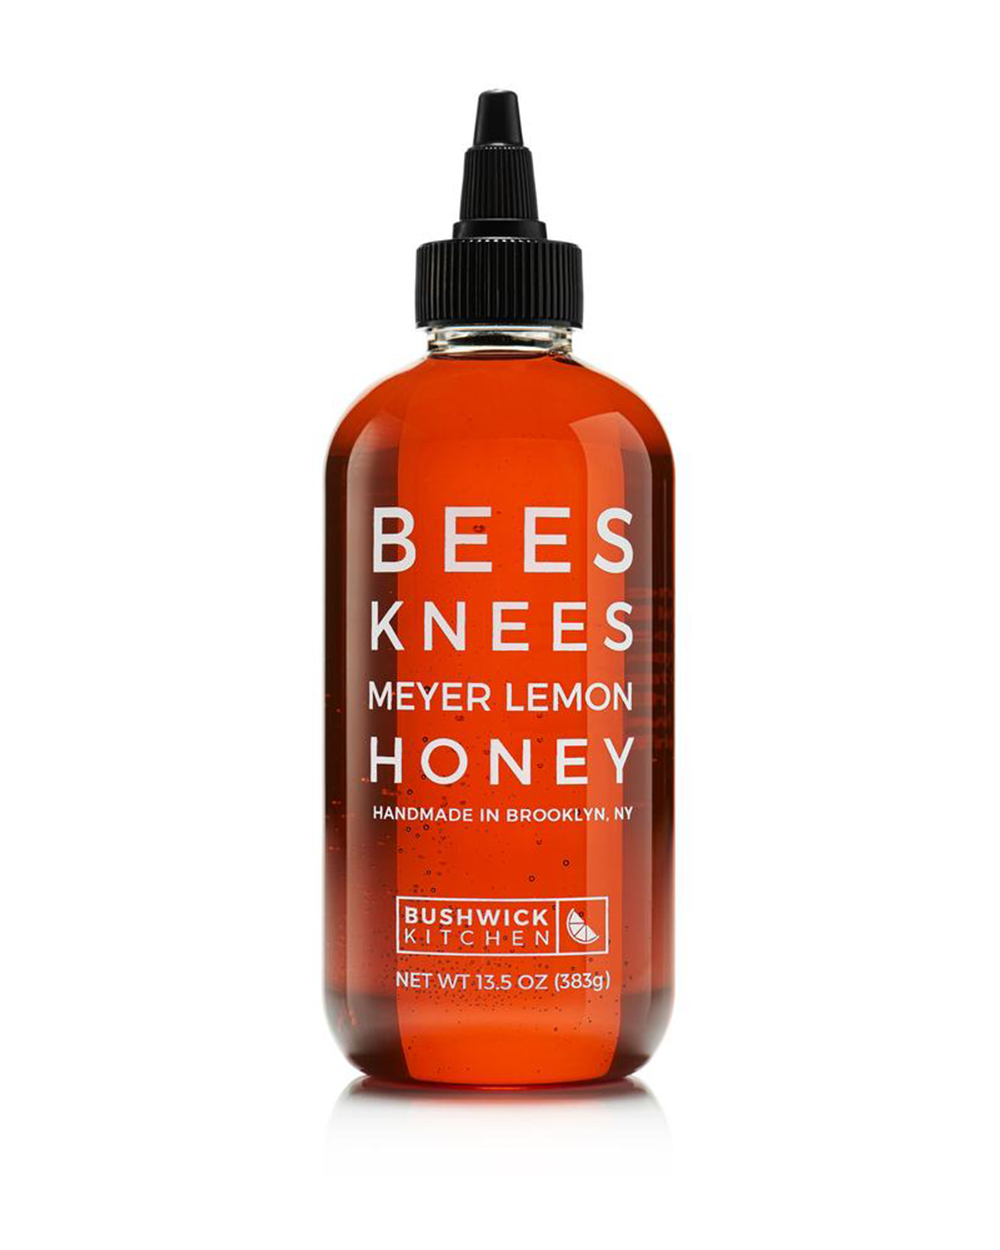 Bees Knees Meyer Lemon Honey